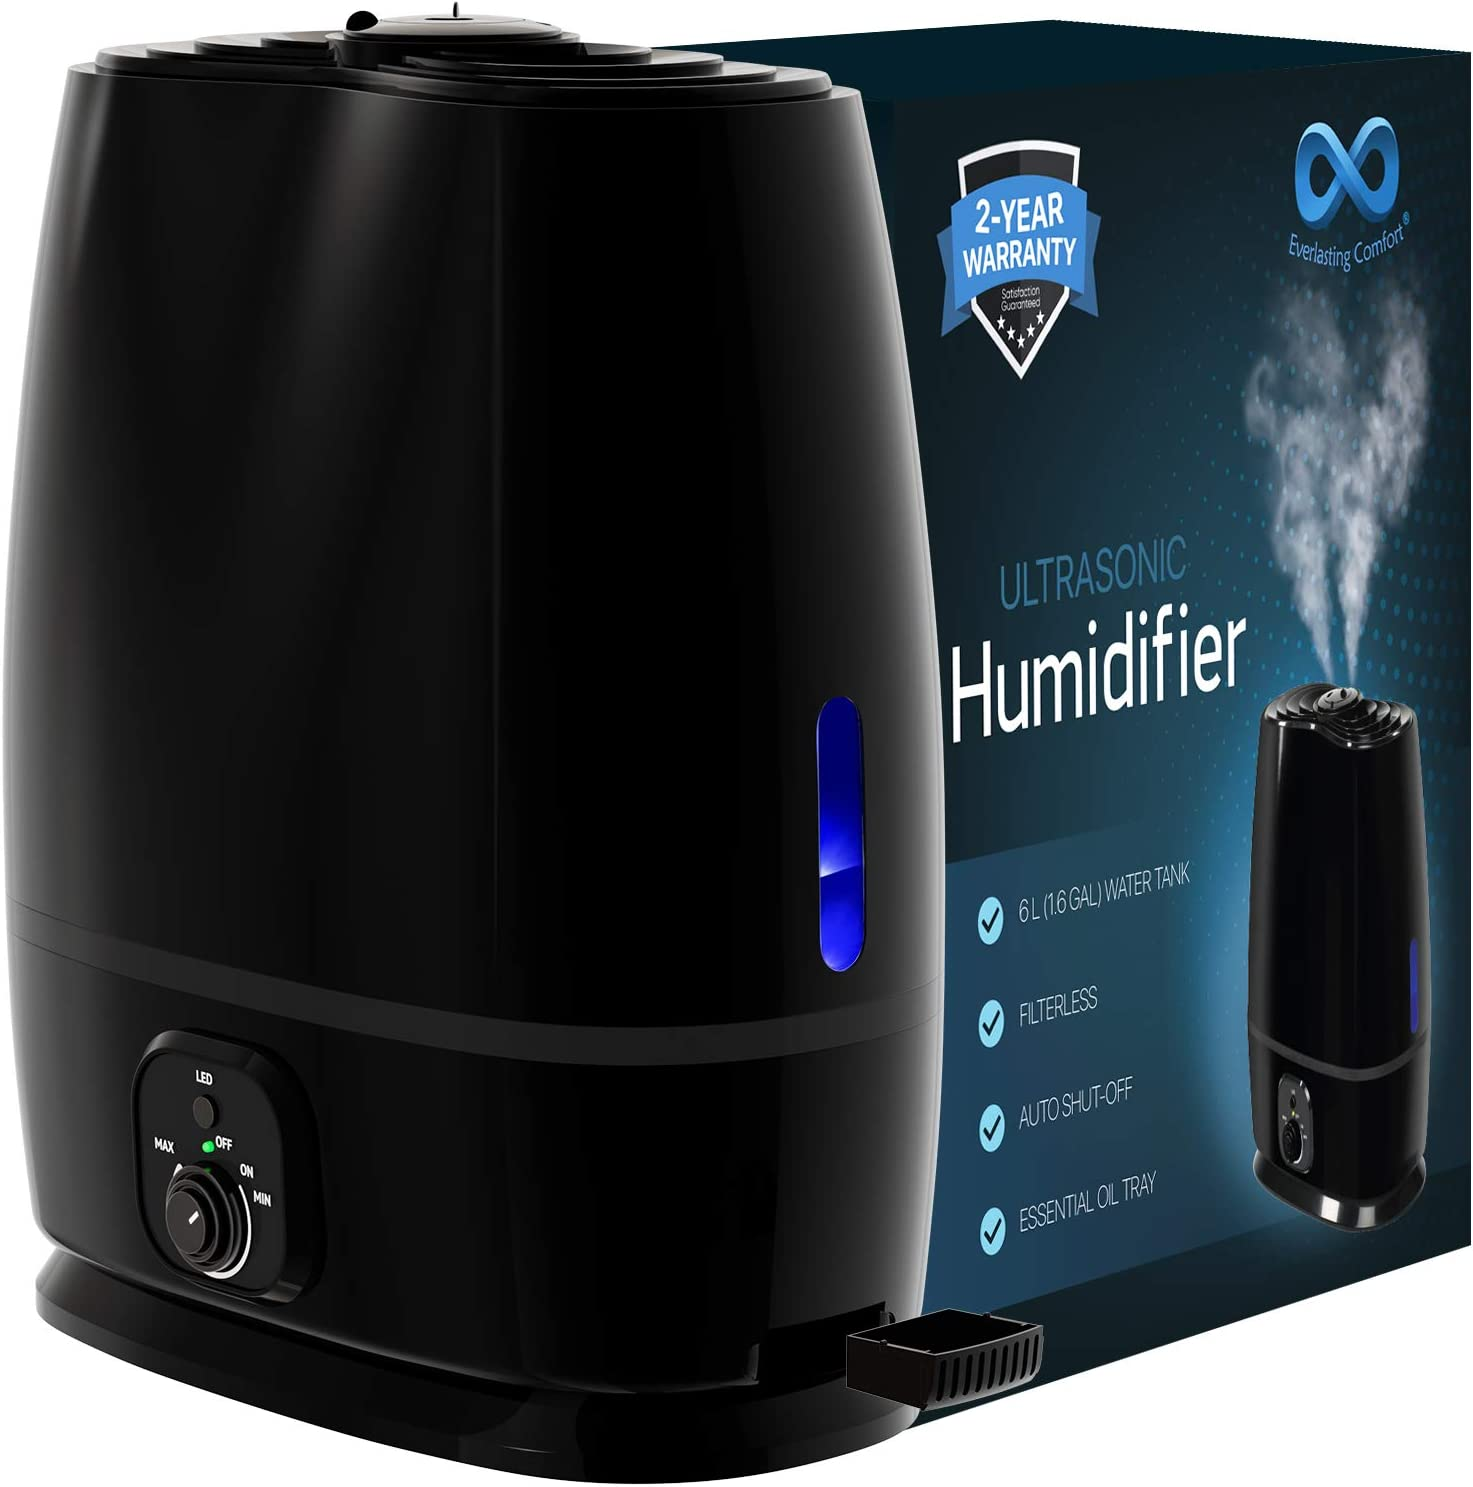 Everlasting Comfort Humidifiers For Singers